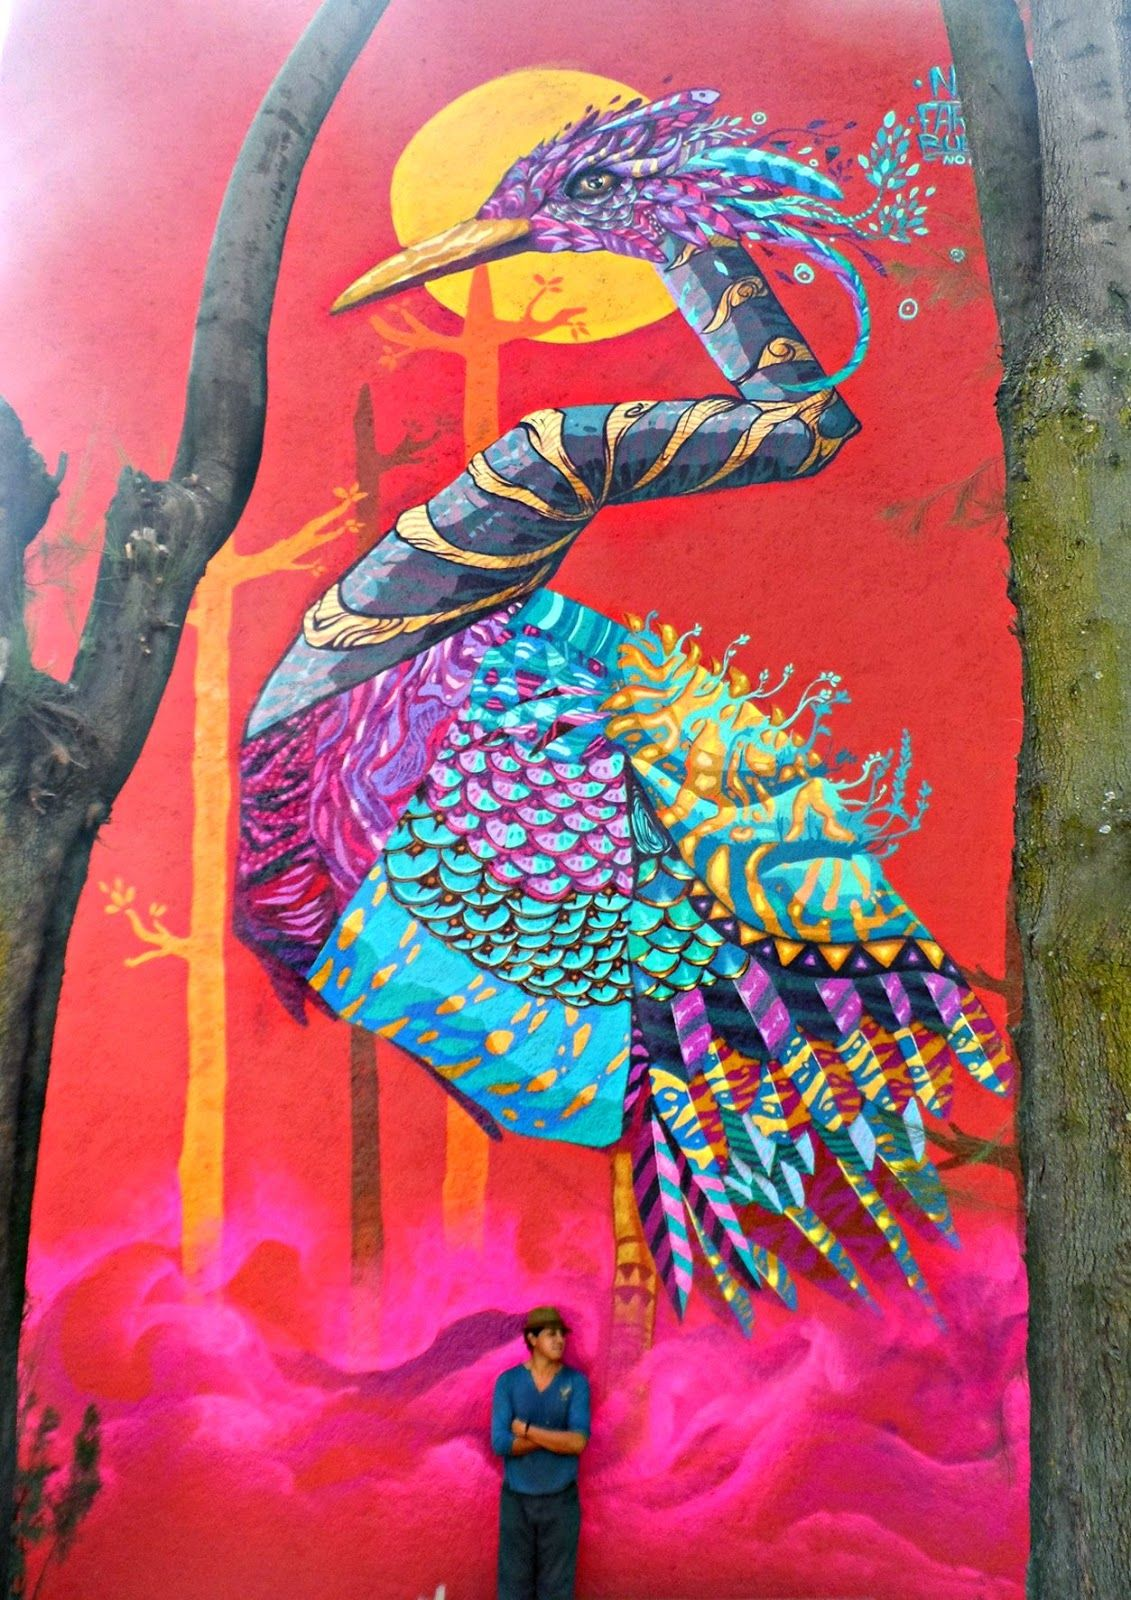 """2015 is starting well for Farid Rueda which somehow already managed to complete four large-scale murals on the streets of Mexico DF, Queretaro and Coyoacán in Mexico.Entitled """"Scream"""", """"TECOLOTL"""", """"Cantos de Color"""" or """"Coyohuacan"""", the Mexican muralist dropped some impressive animal-themed pieces which are sure to brighten the residents' neighborhood.Reconvene after the jump to discover"""